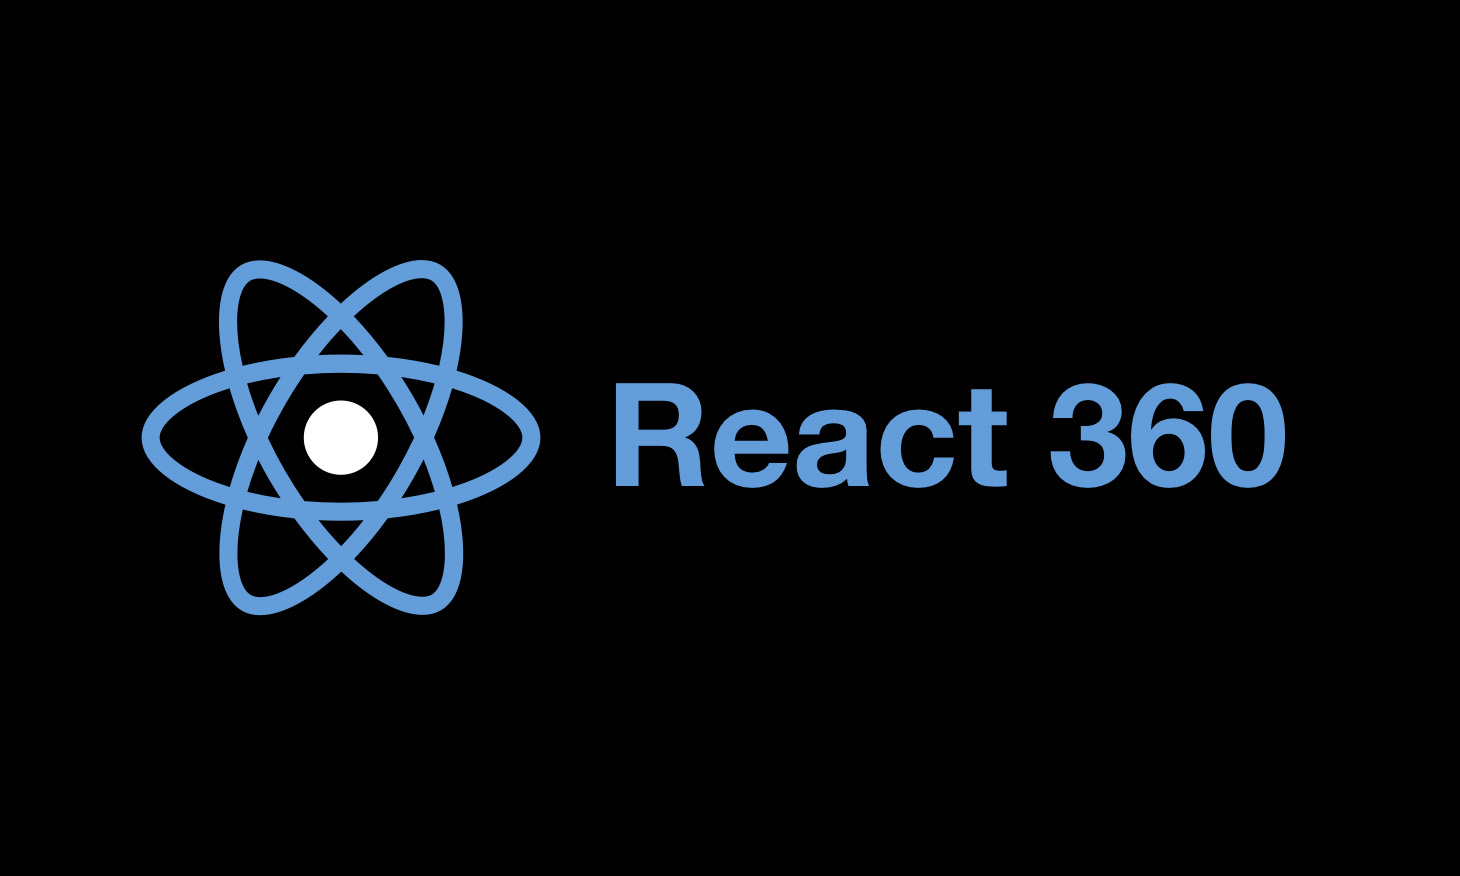 React 360 replaces React VR for streamlined development focus - Facebook  Code